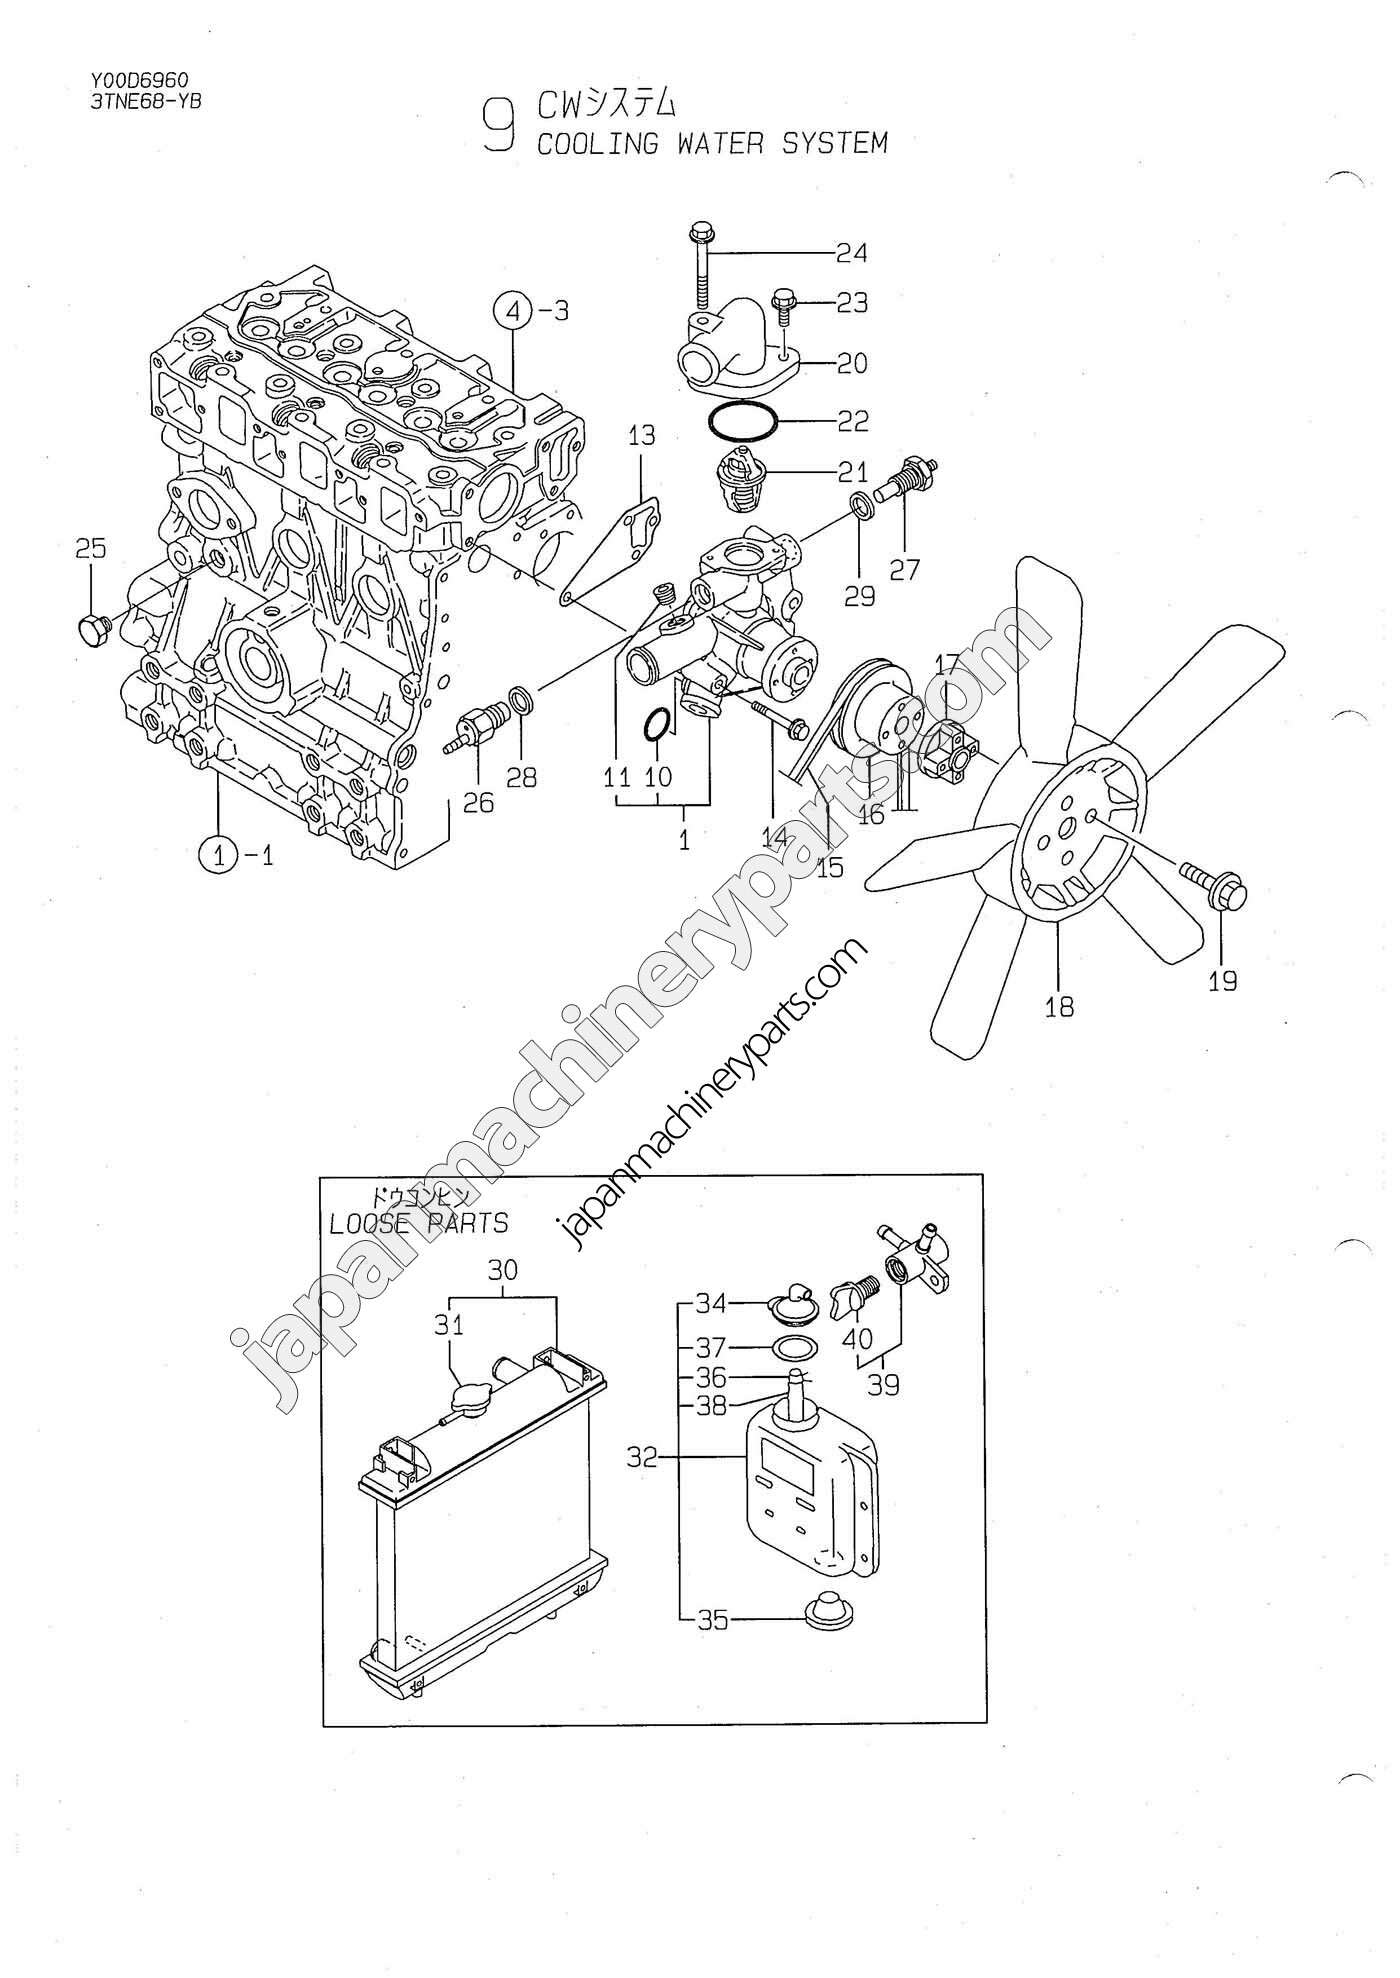 Electrical Wiring Diagram For Kubota L